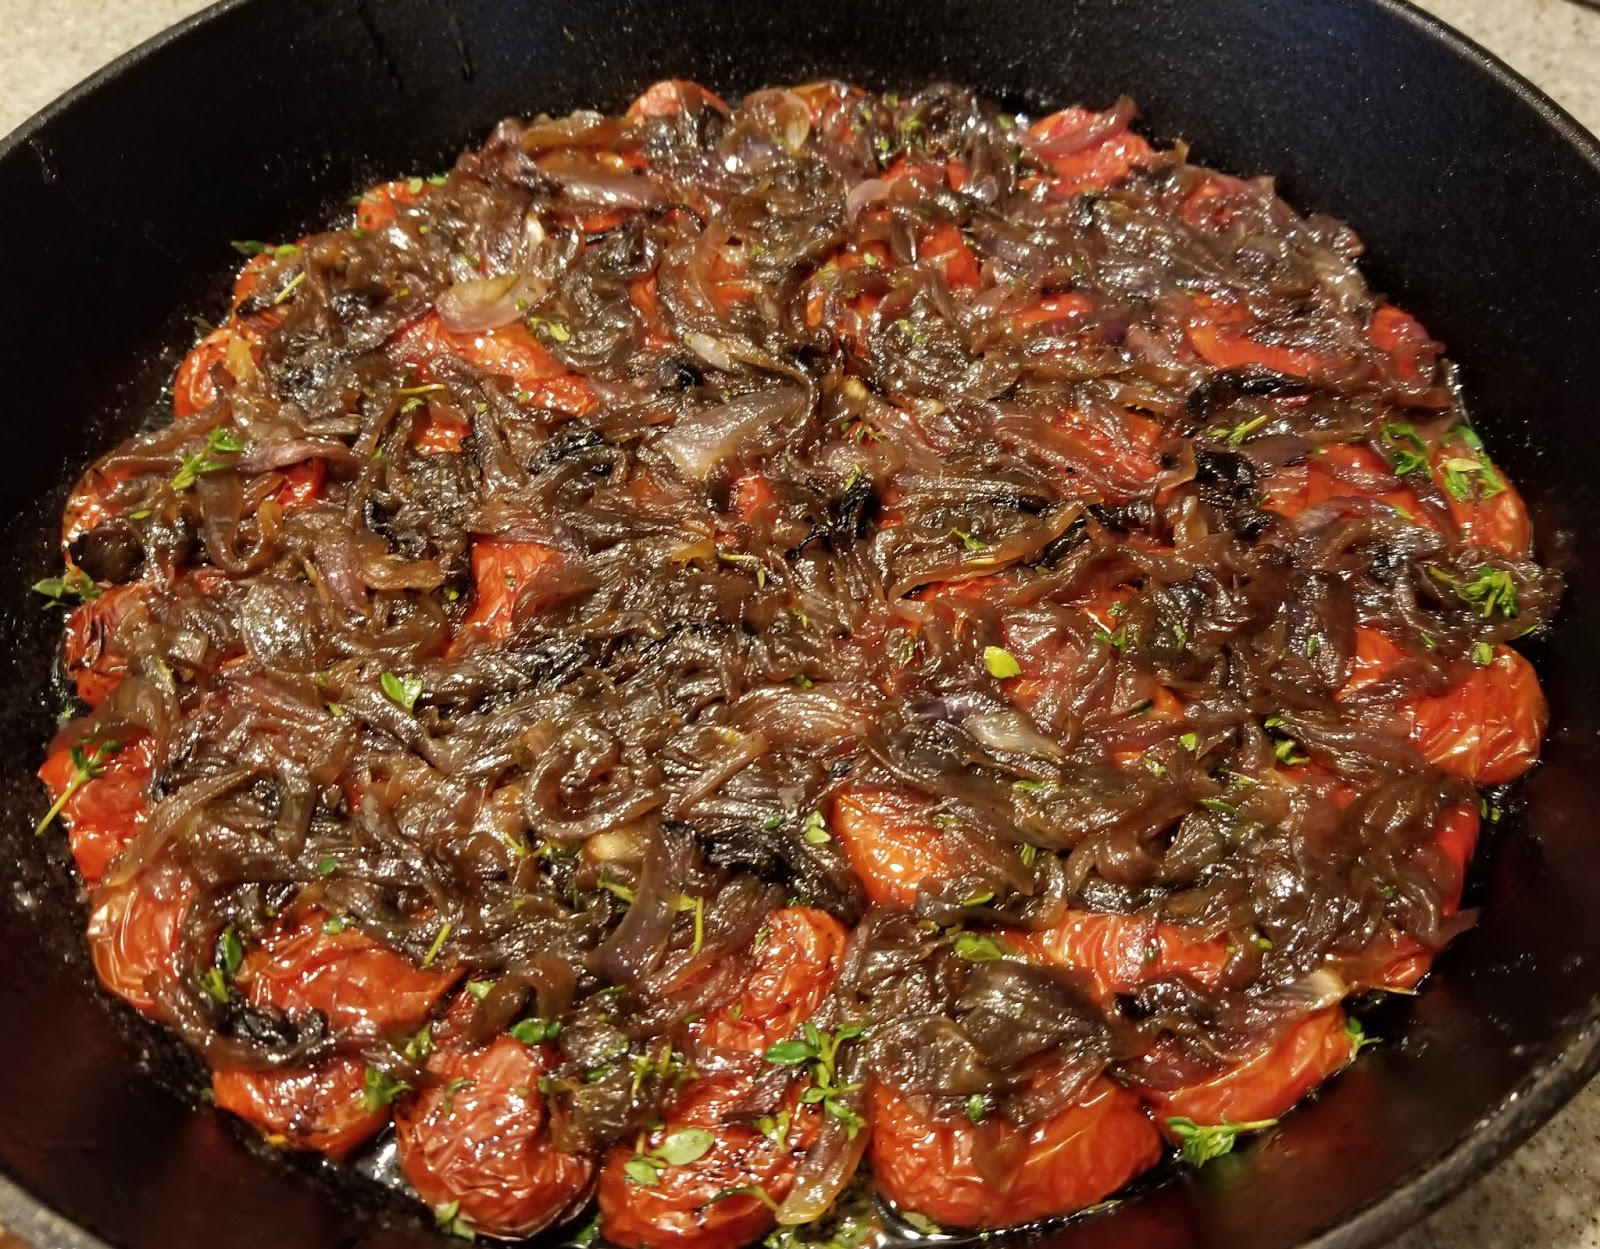 Caramelized red onions over oven roasted tomatoes